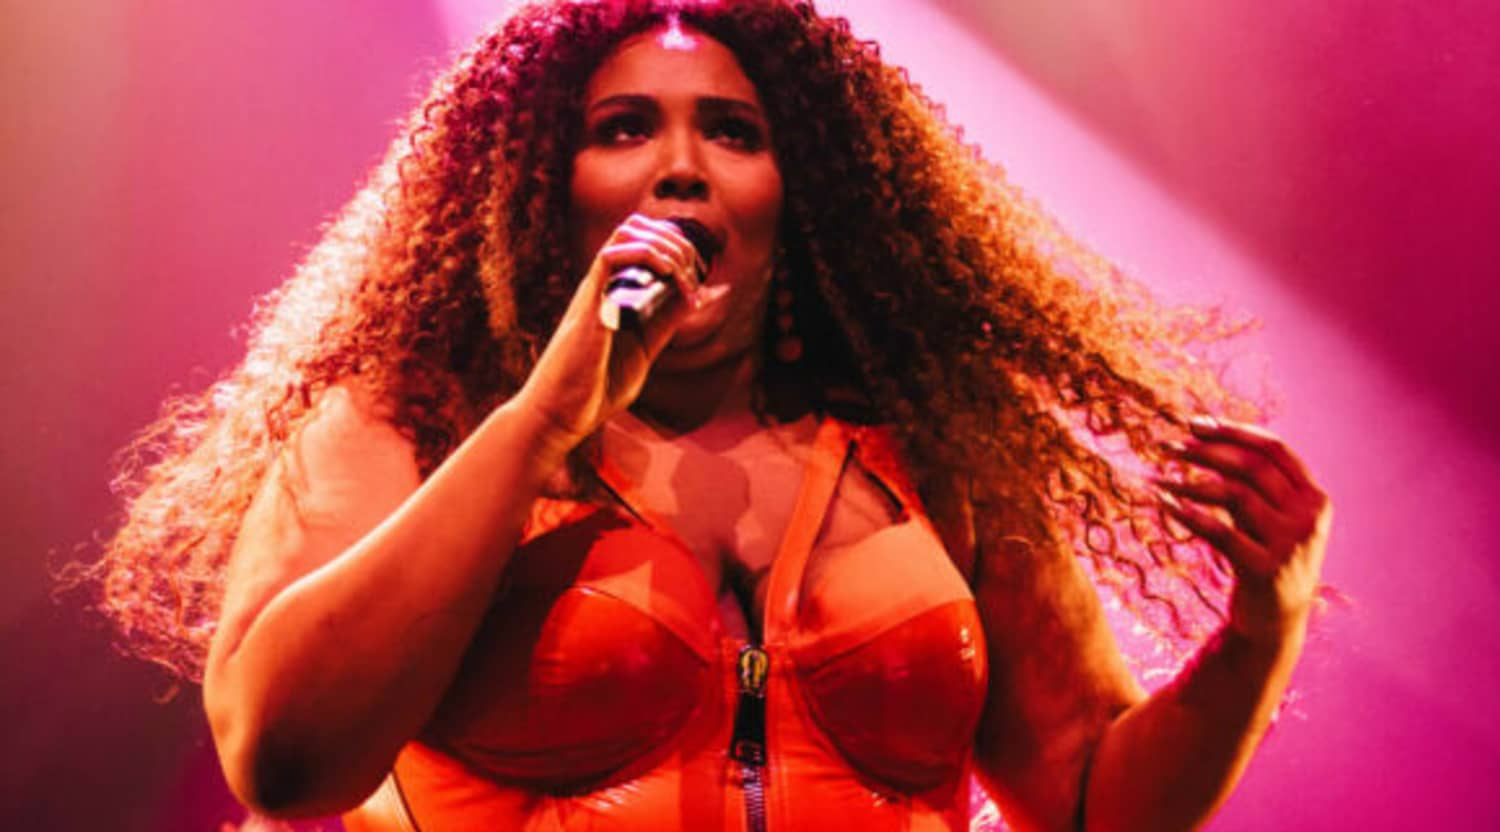 Lizzo Tickets - Lizzo Concert Tickets and Tour Dates - StubHub